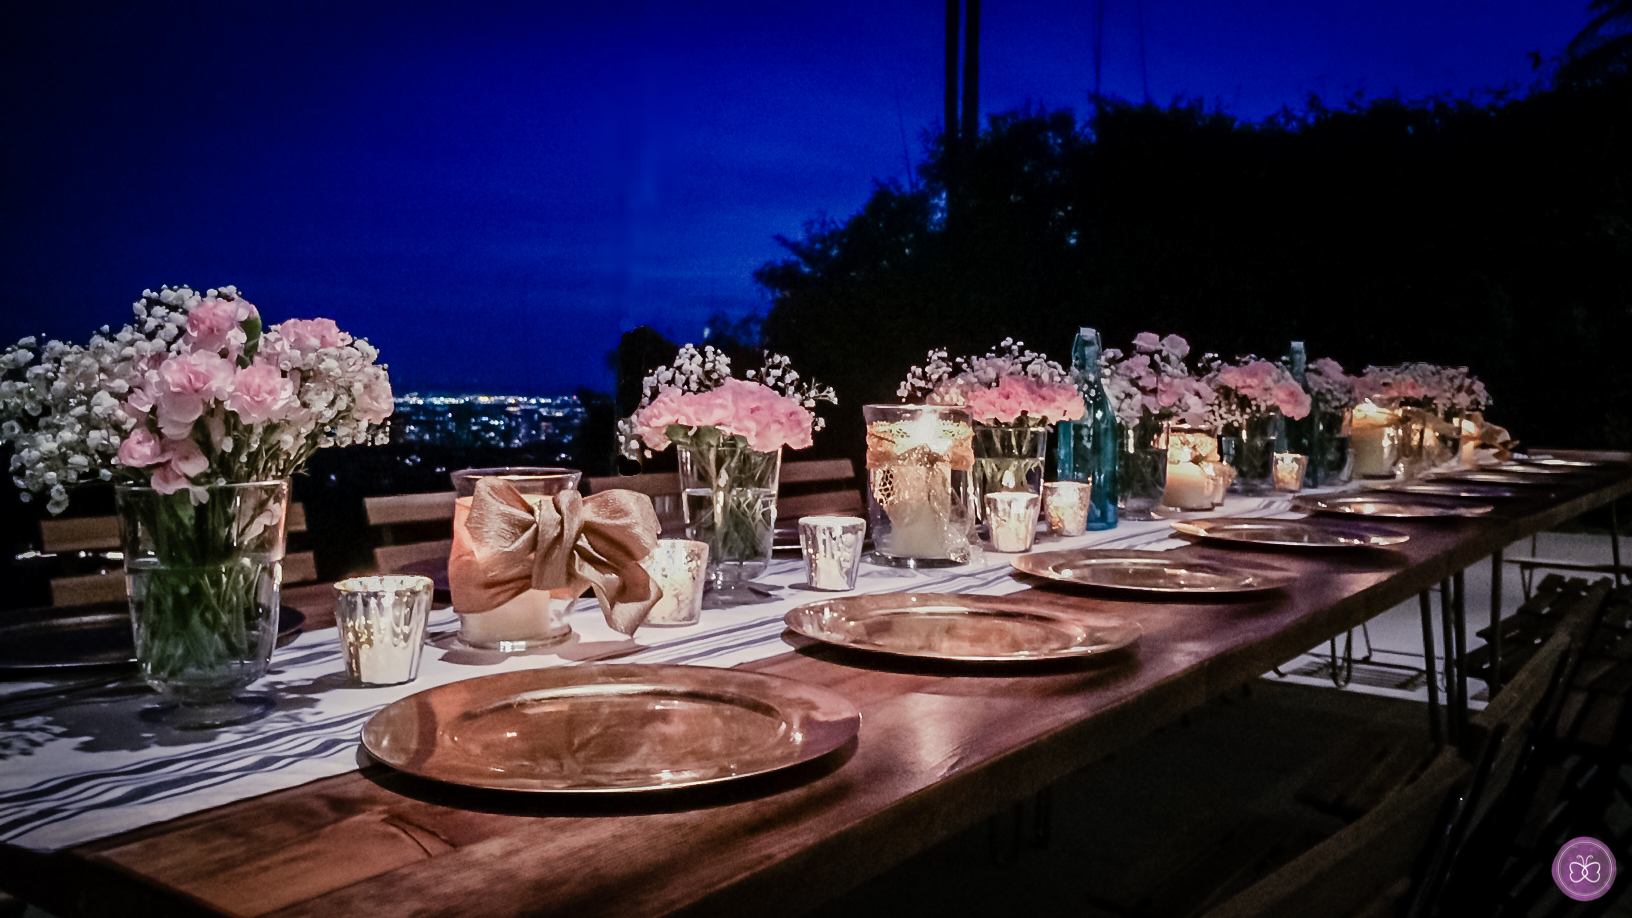 Dinner party in Beverly Hills for 22 guests planned and styled by Papillons. Bonus points go to the stunning view overlooking the city.